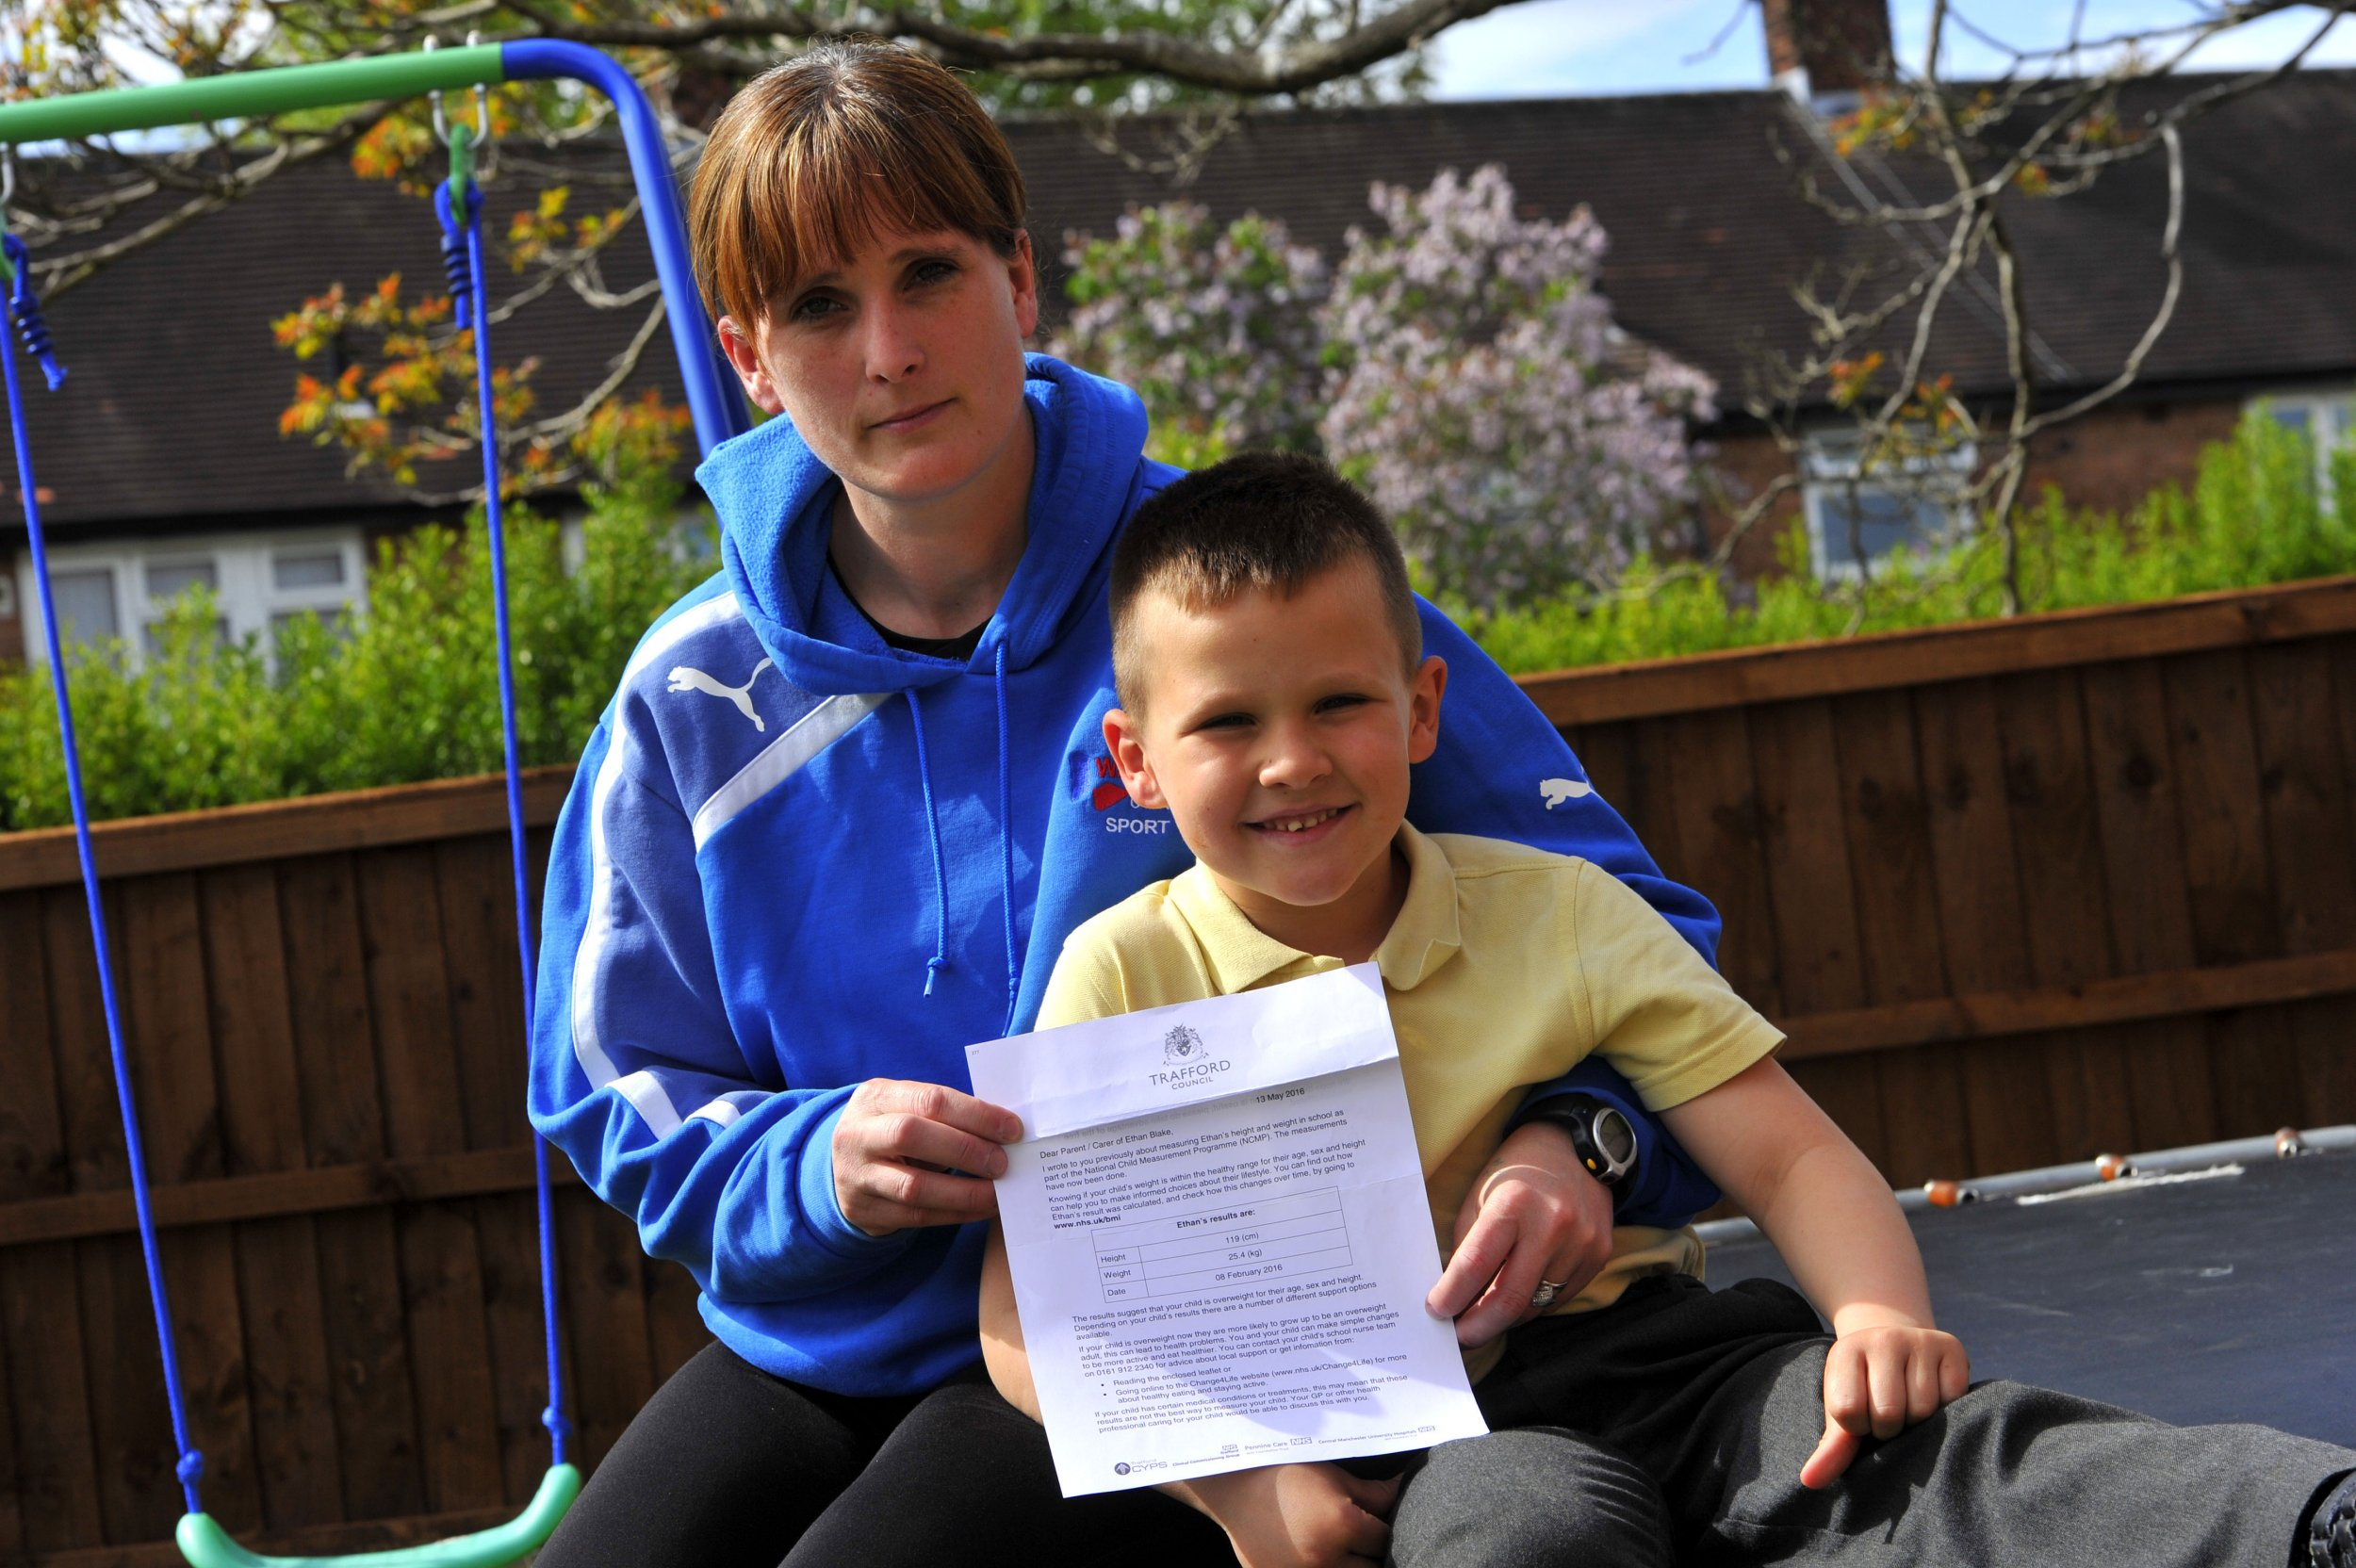 MEN SYNDICATIONnMum Michelle Blake with some Ethan at there home in Timperley, Cheshire nEthan who does karate four times a week has been told he is too fat in a letter from Trafford council.nVincent Cole/MEN